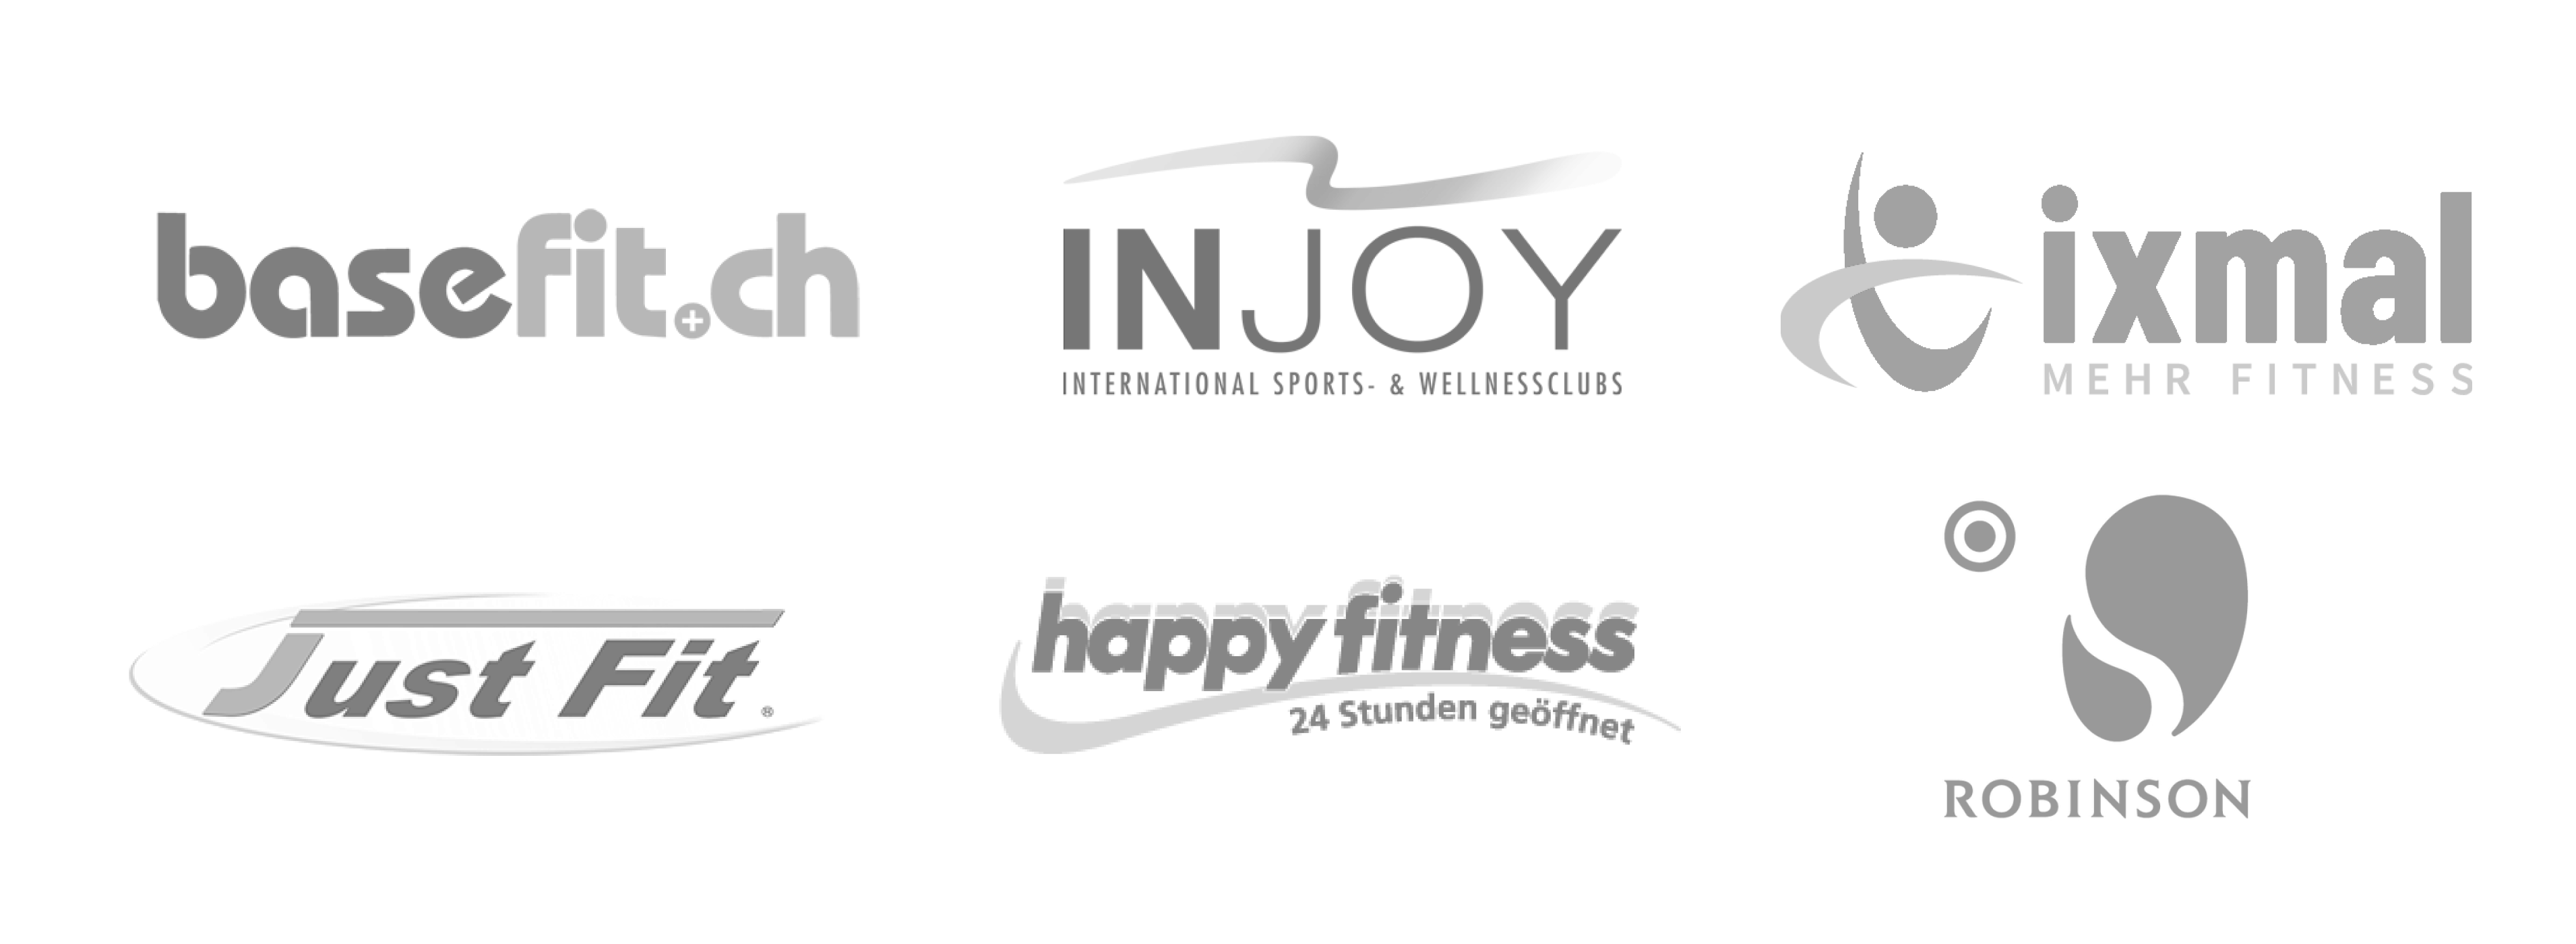 myFitApp Kunden basefit, Injoy, ixmal, Just Fit, Happy Fitness, Robinson